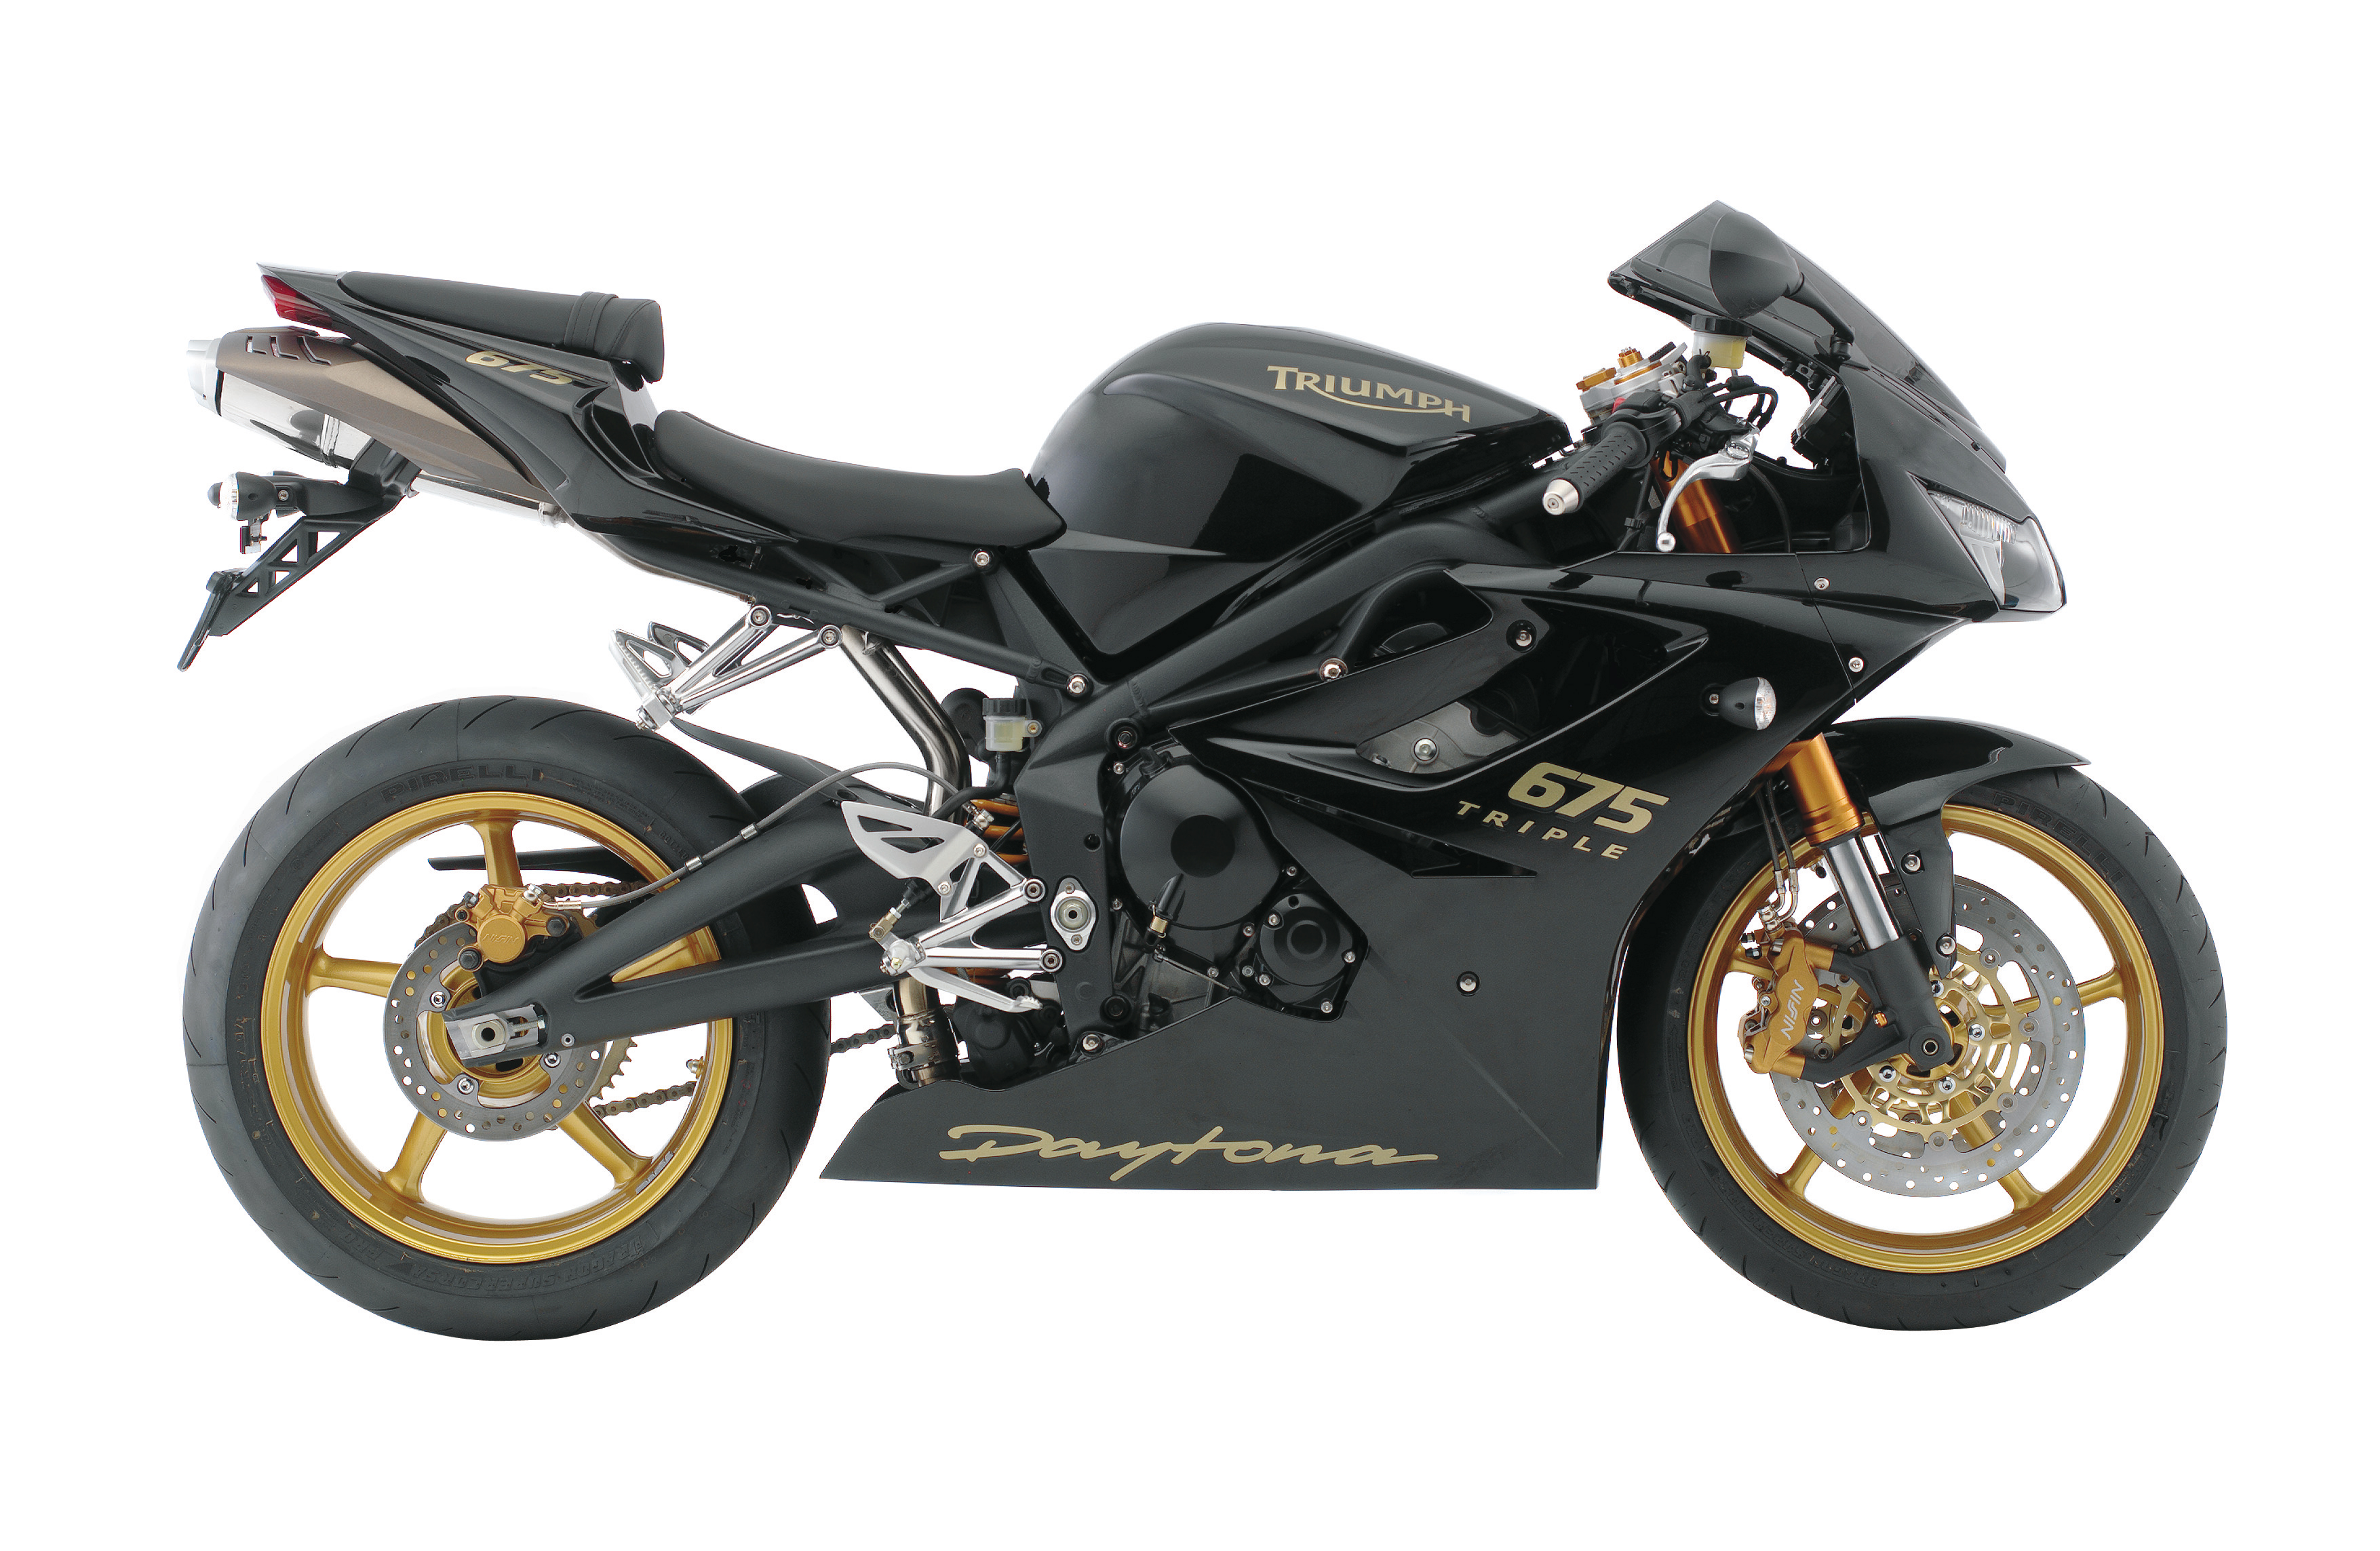 Daytona 675 2006 2012 Review Visordown